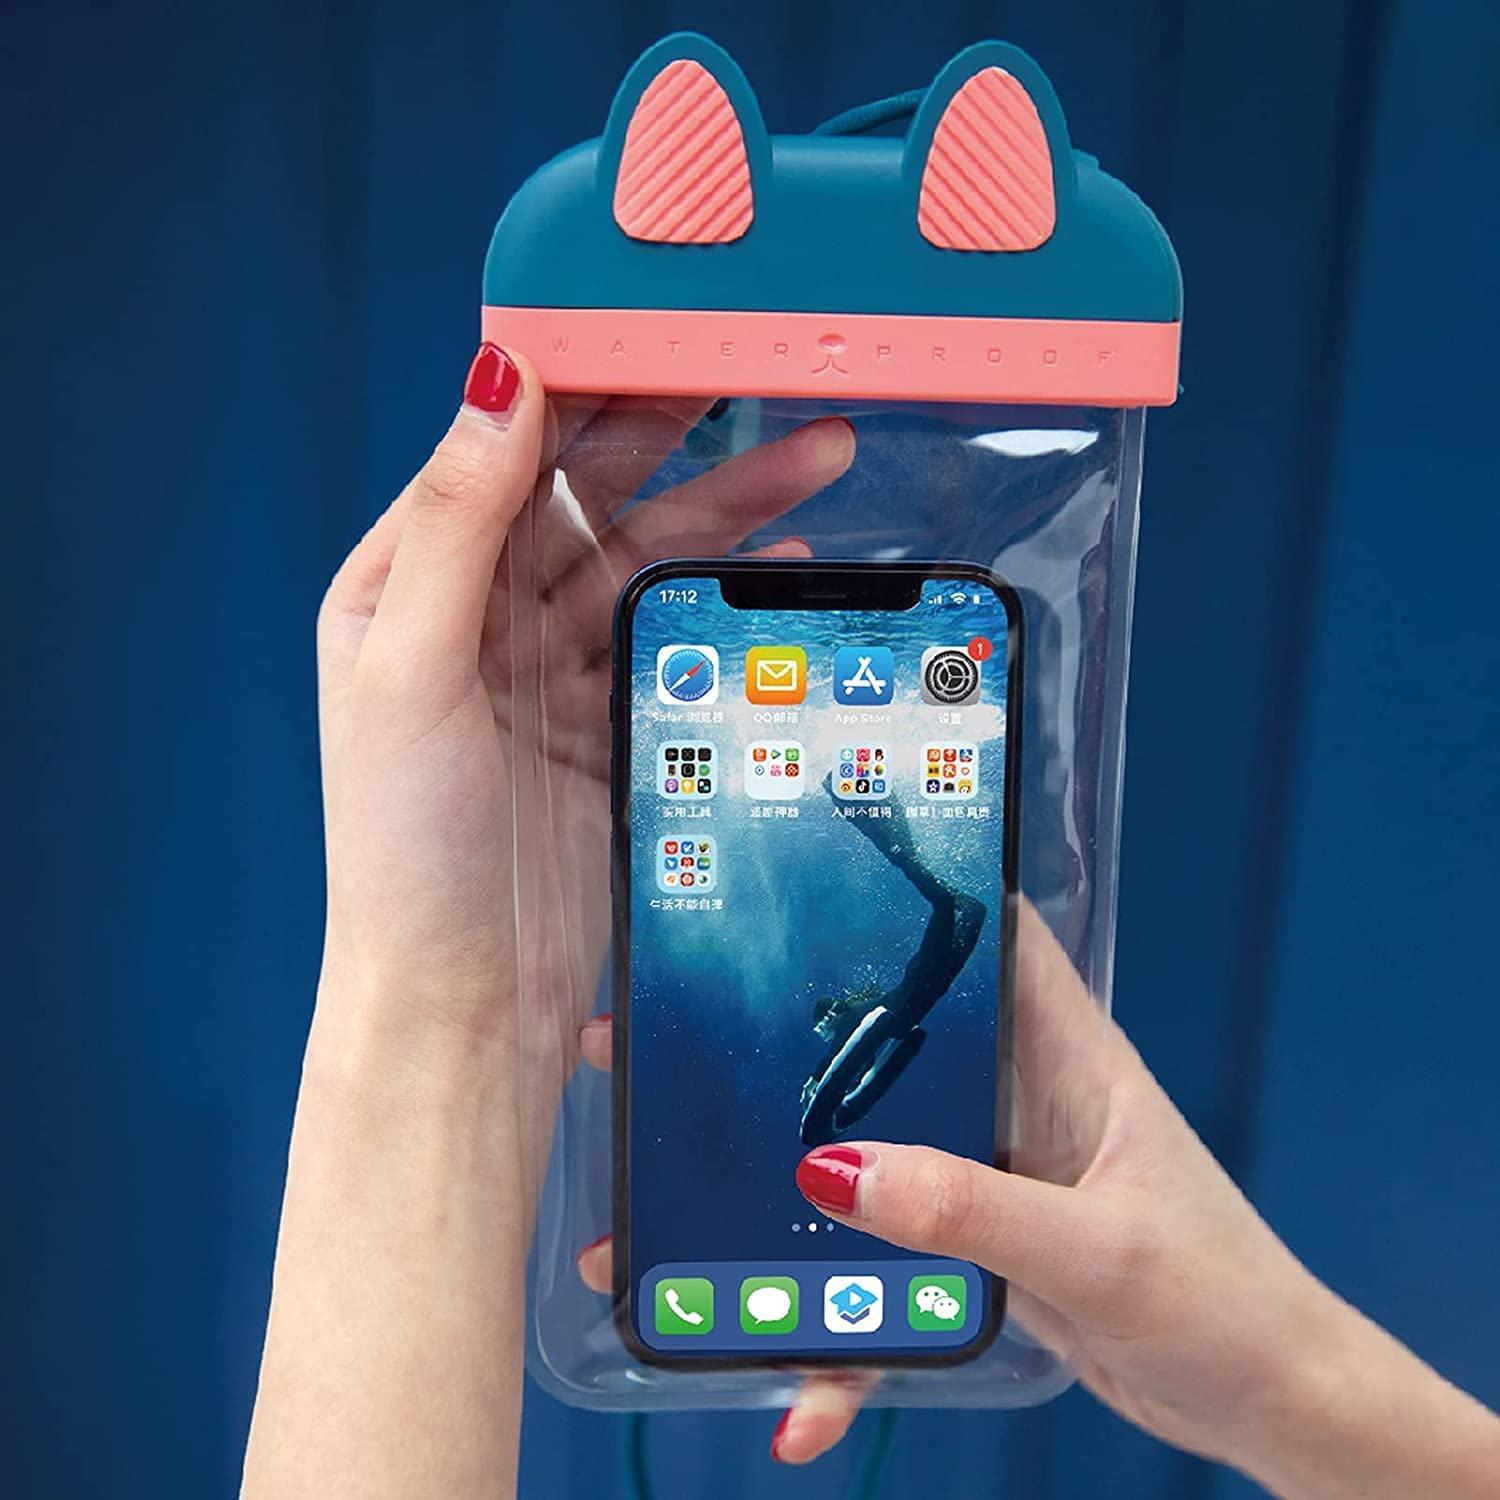 Cute Waterproof Phone Pouch - Clear Waterproof Bag,Waterproof Case,Foldable Anti-Sinking IP68 Floating Air Cell Phone Dry Bags with Hanging Strap for Swimming (Blue)